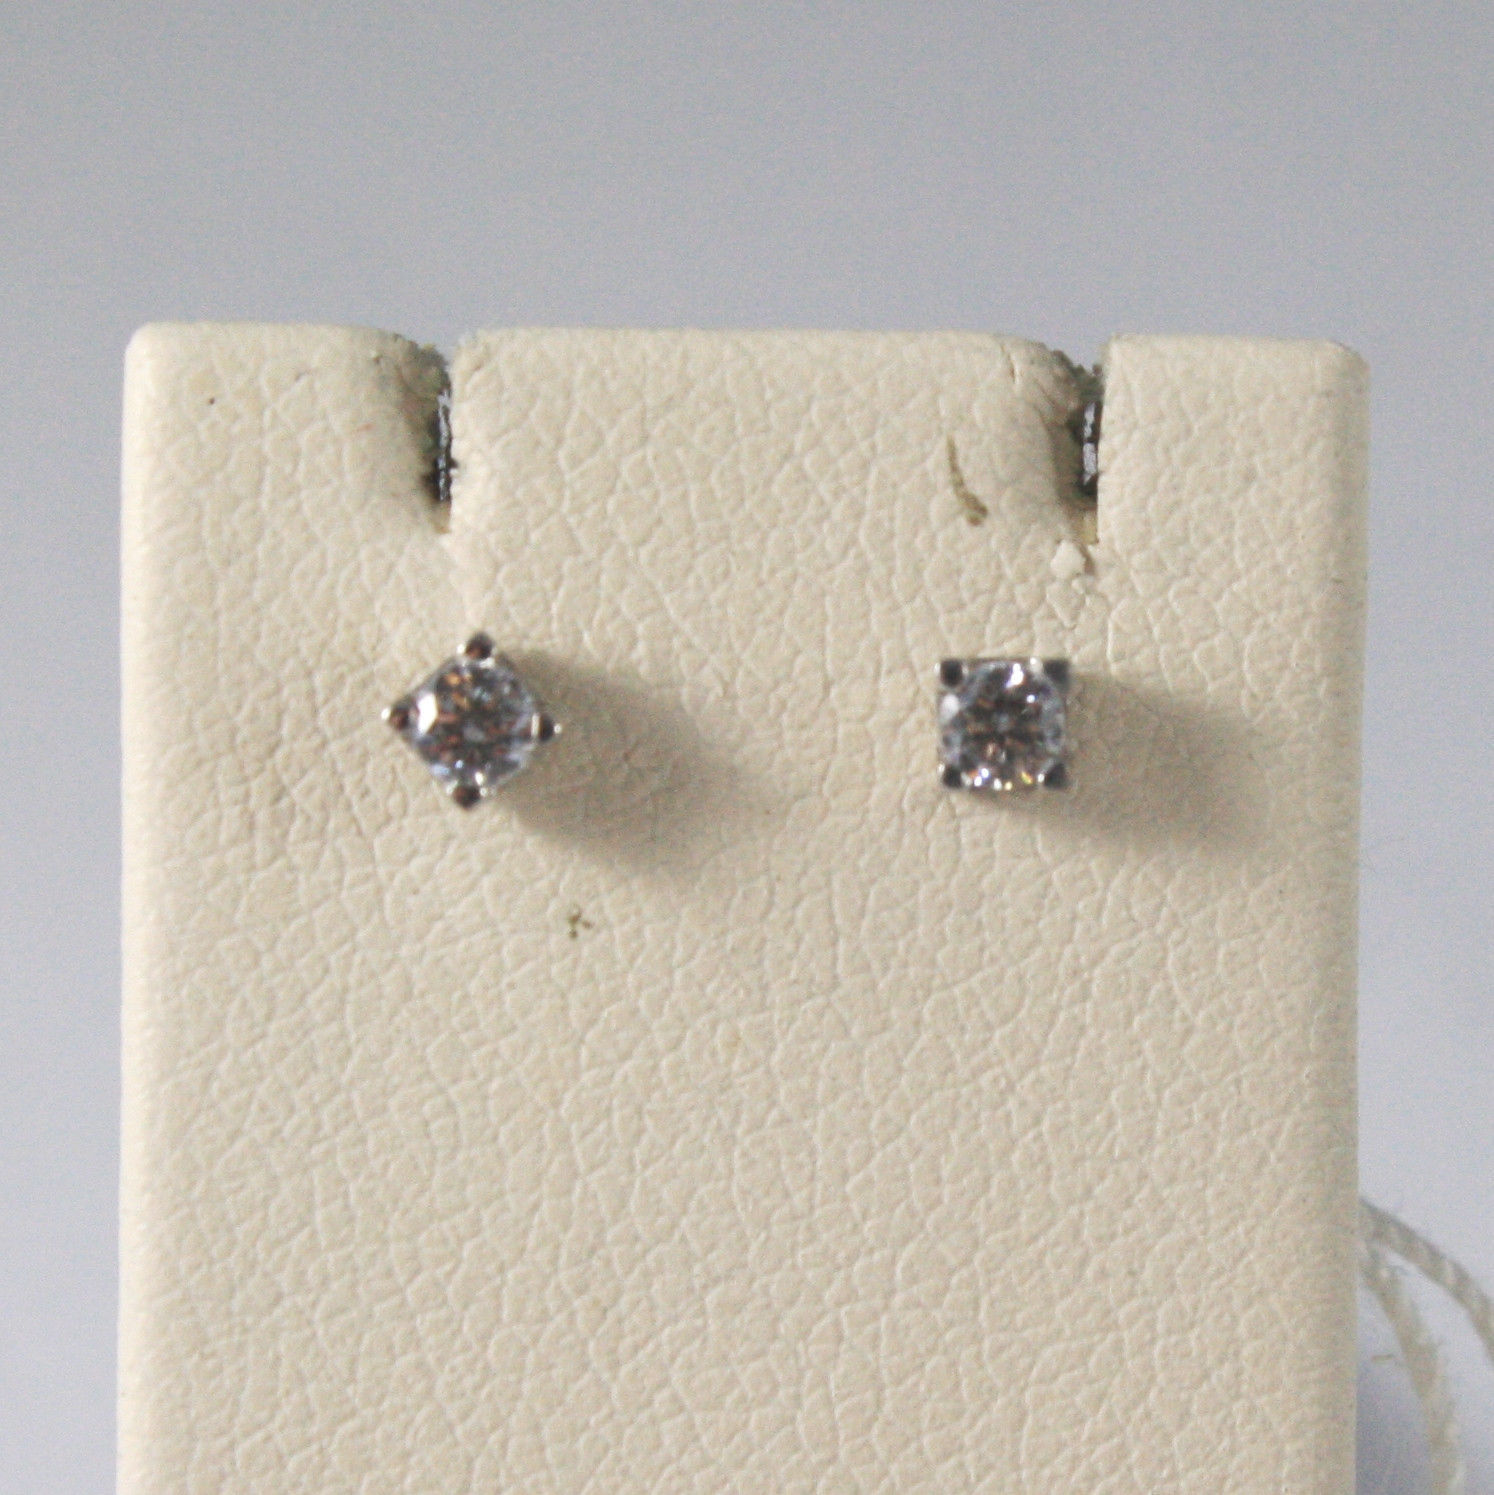 SOLID 18KT. WHITE GOLD EARRINGS WITH ZIRCONIA, WIDTH 0,12 IN, MADE IN ITALY.